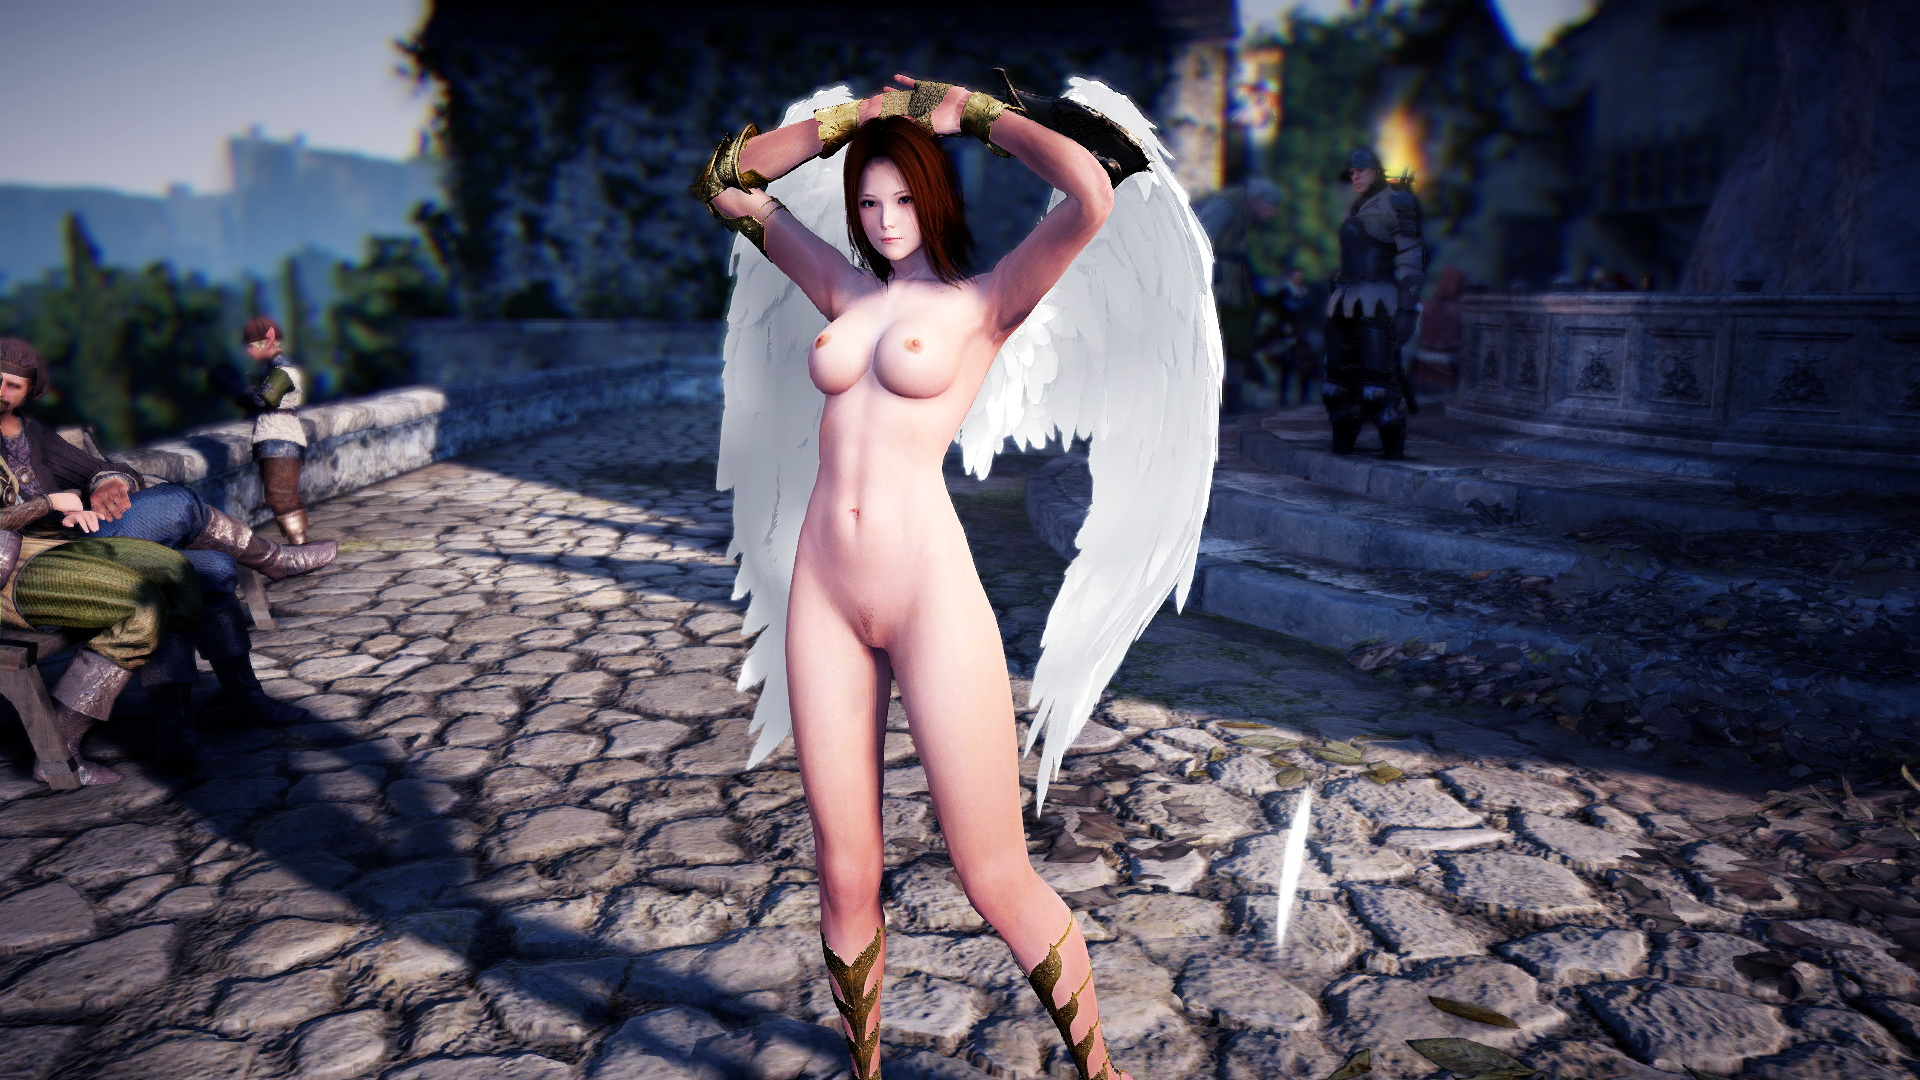 Blade and soul nude mod character creation Part 9